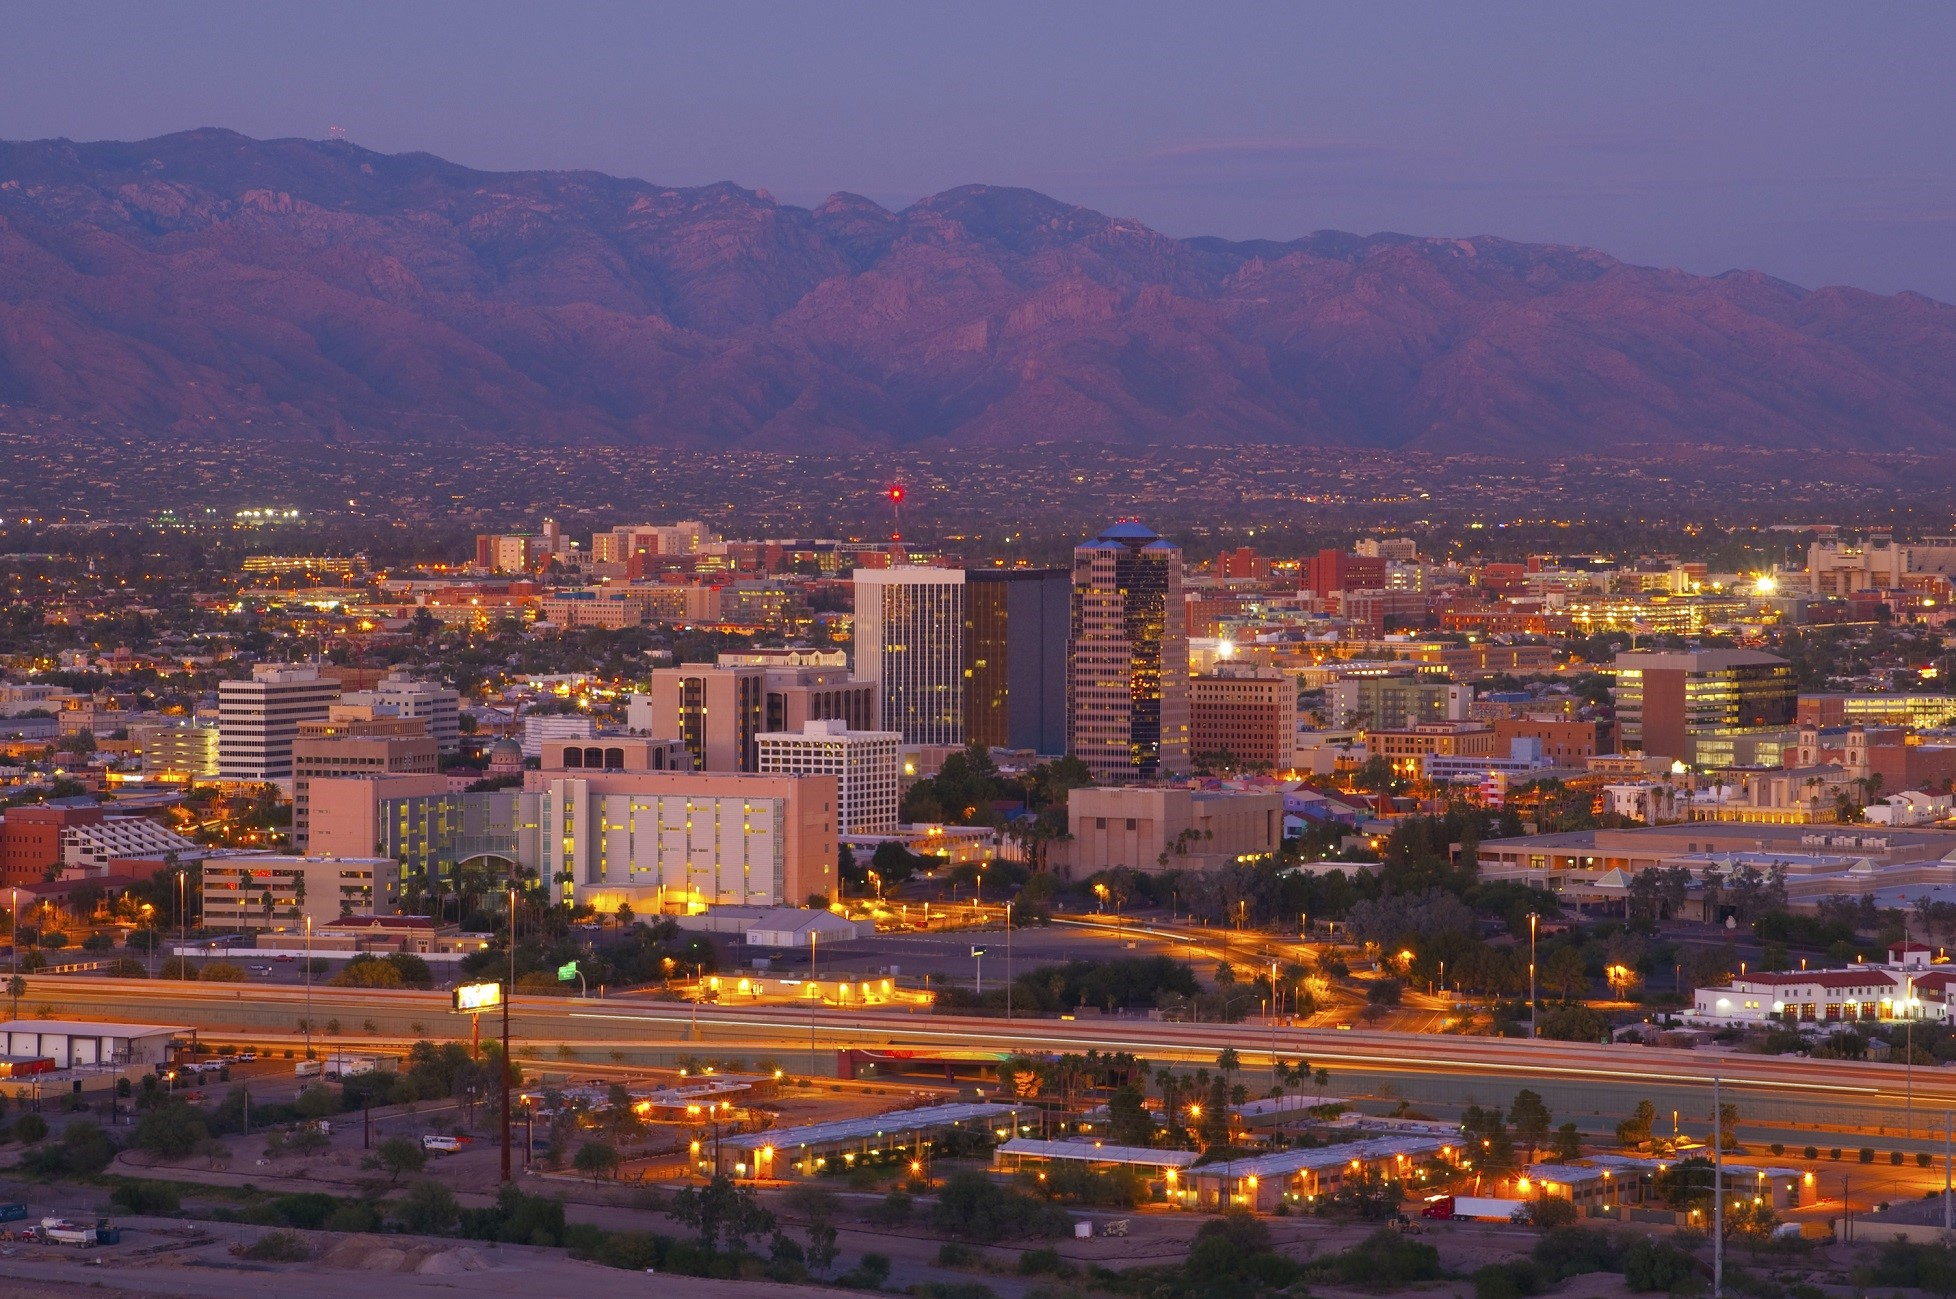 Tucson downtown skyline and aerial overview (including the University of Arizona) w/ Catalina Mountains at dusk.